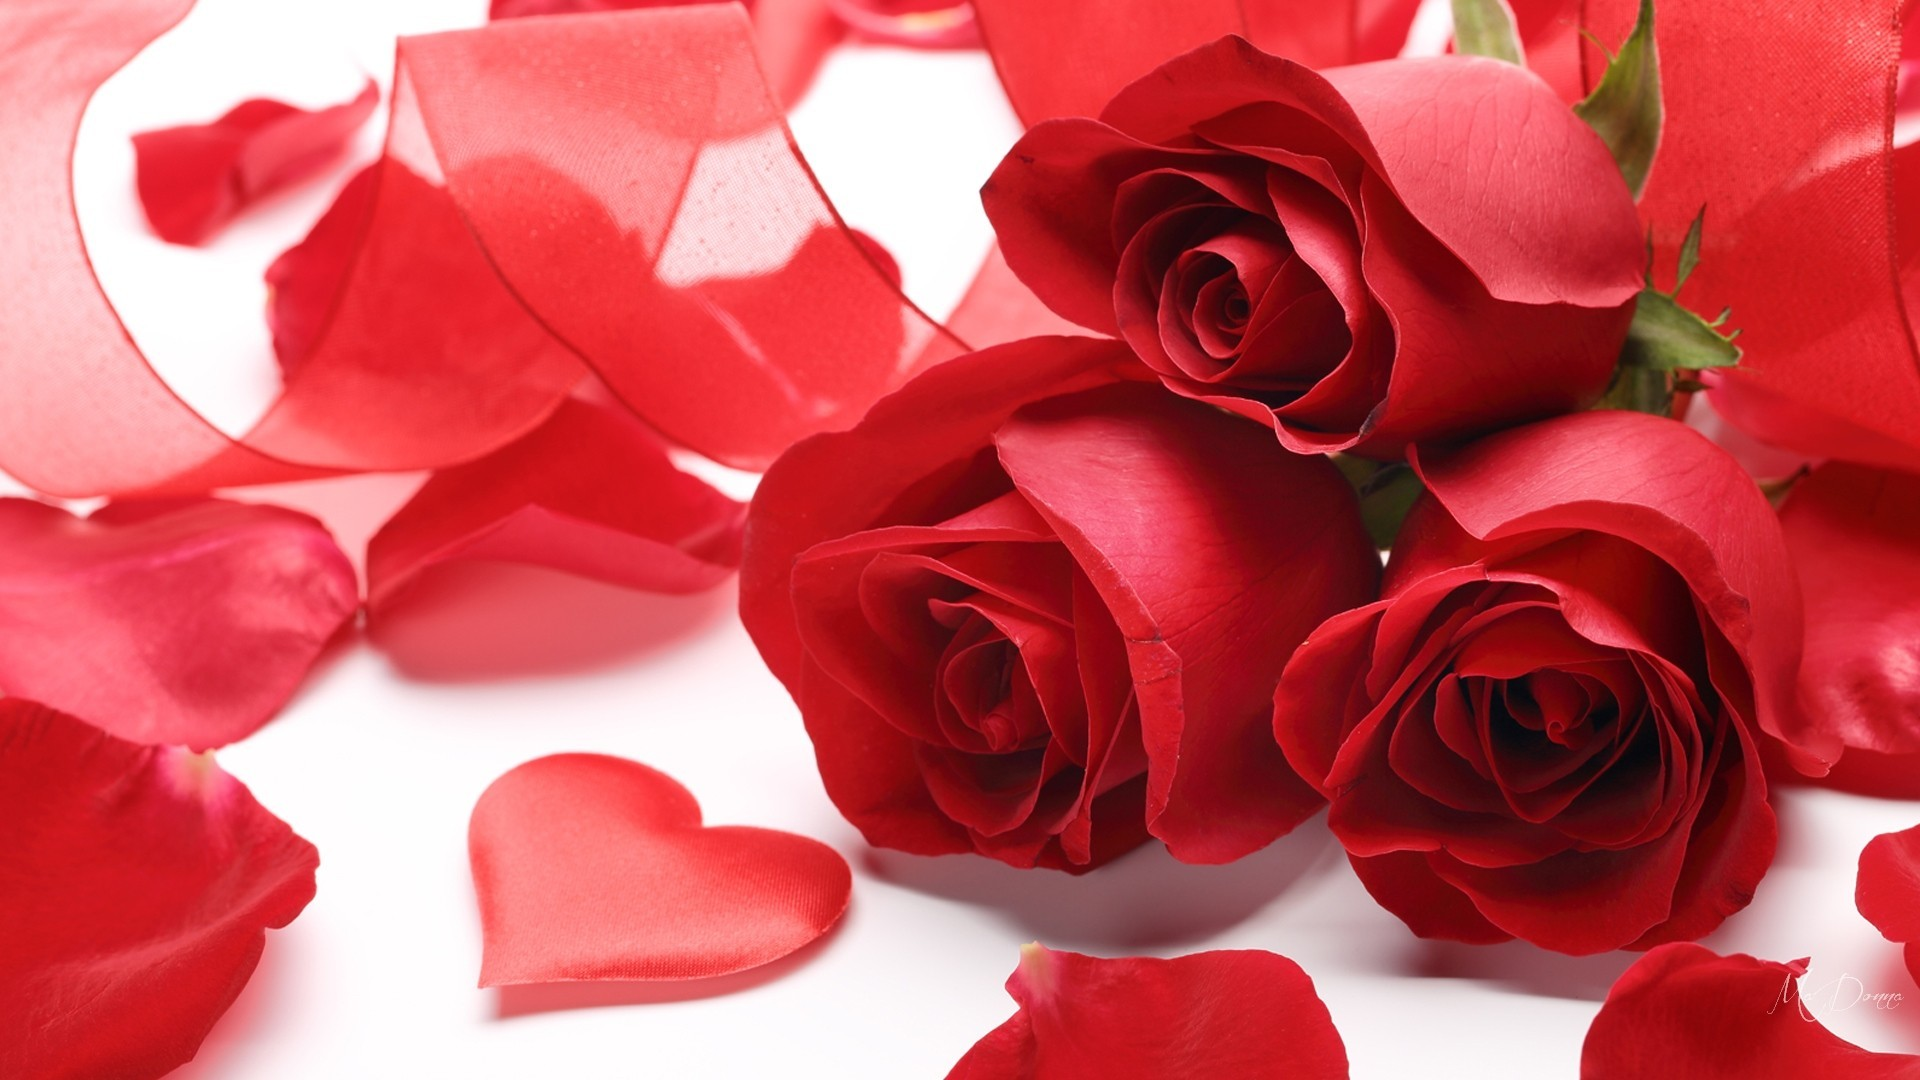 Hearts and flowers wallpaper 63 pictures - Valentine s day flower wallpaper ...